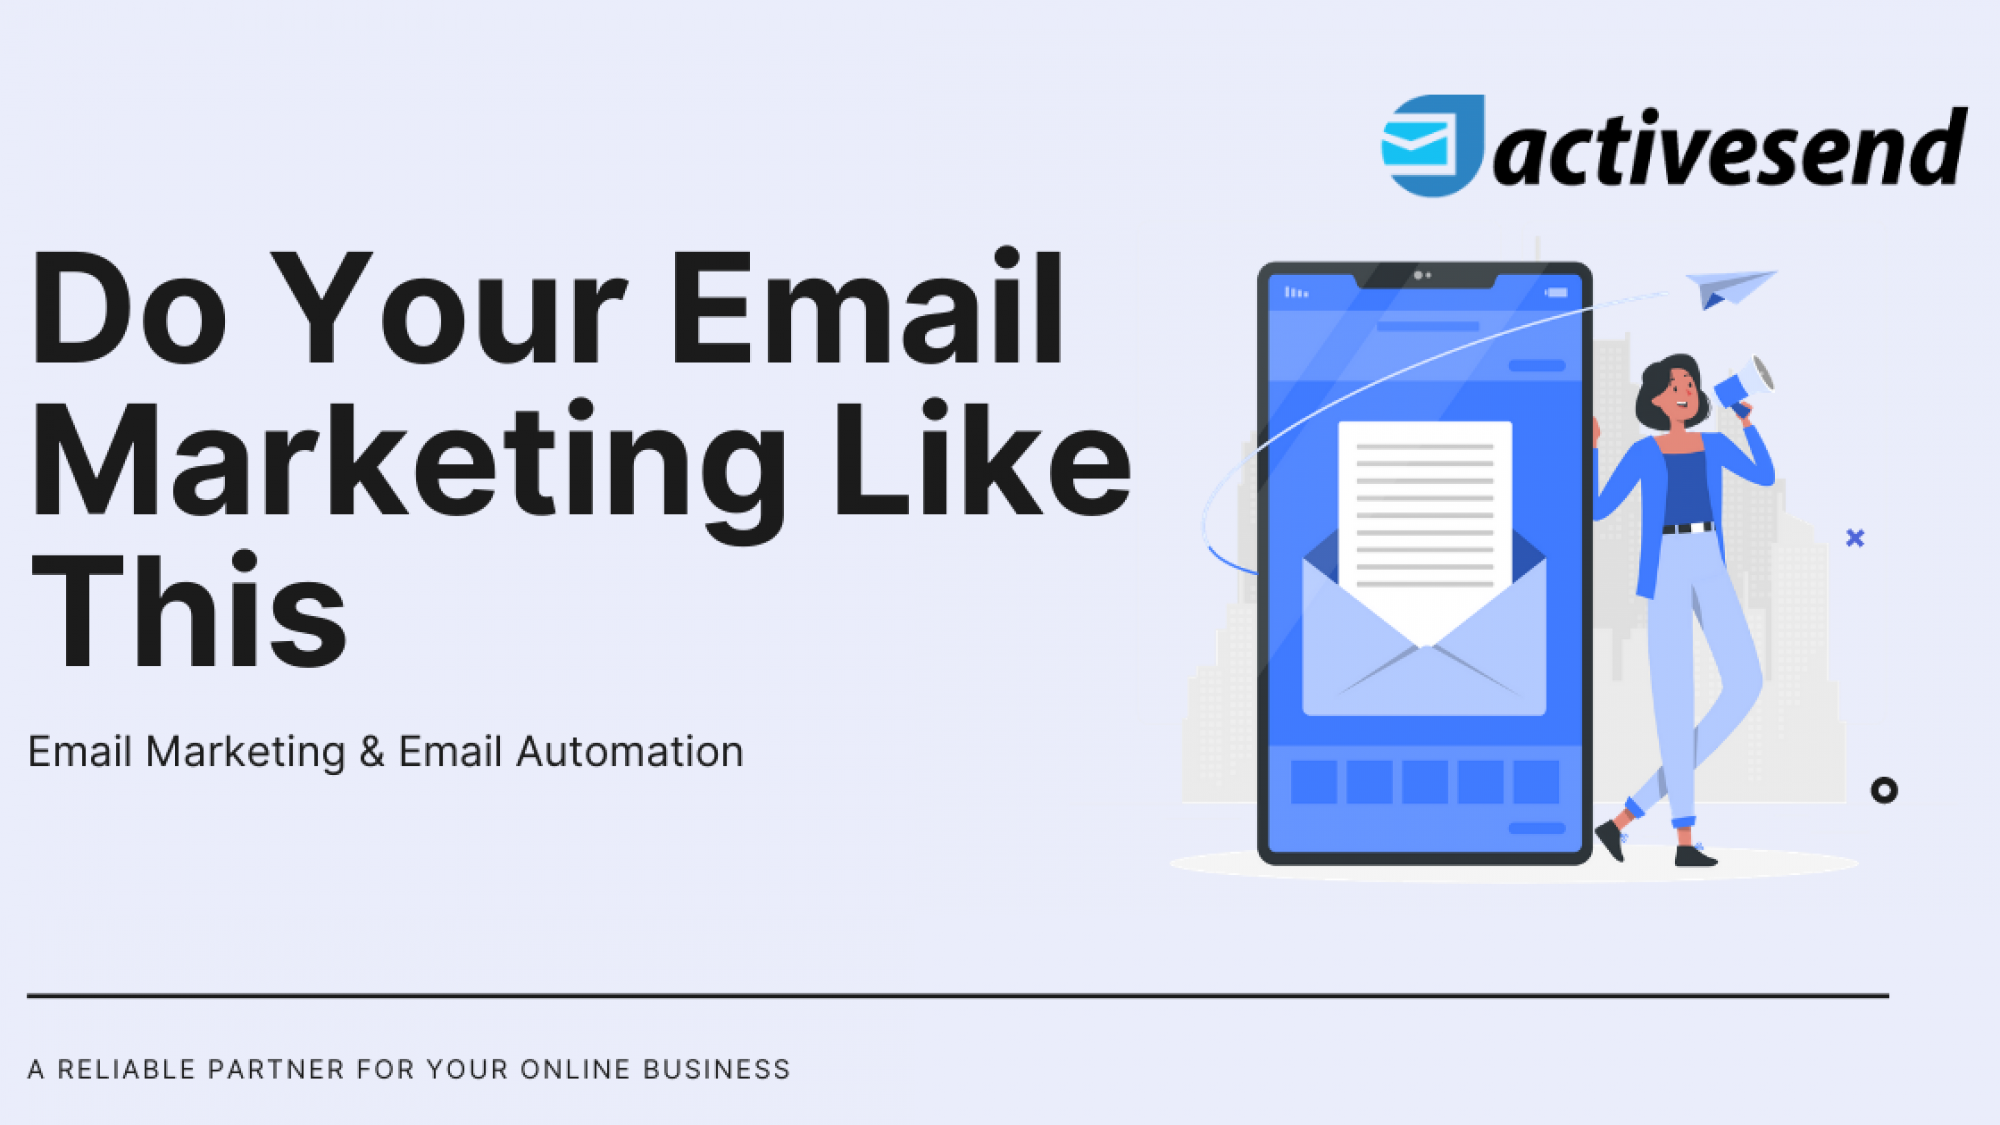 Do Your Email Marketing Like This